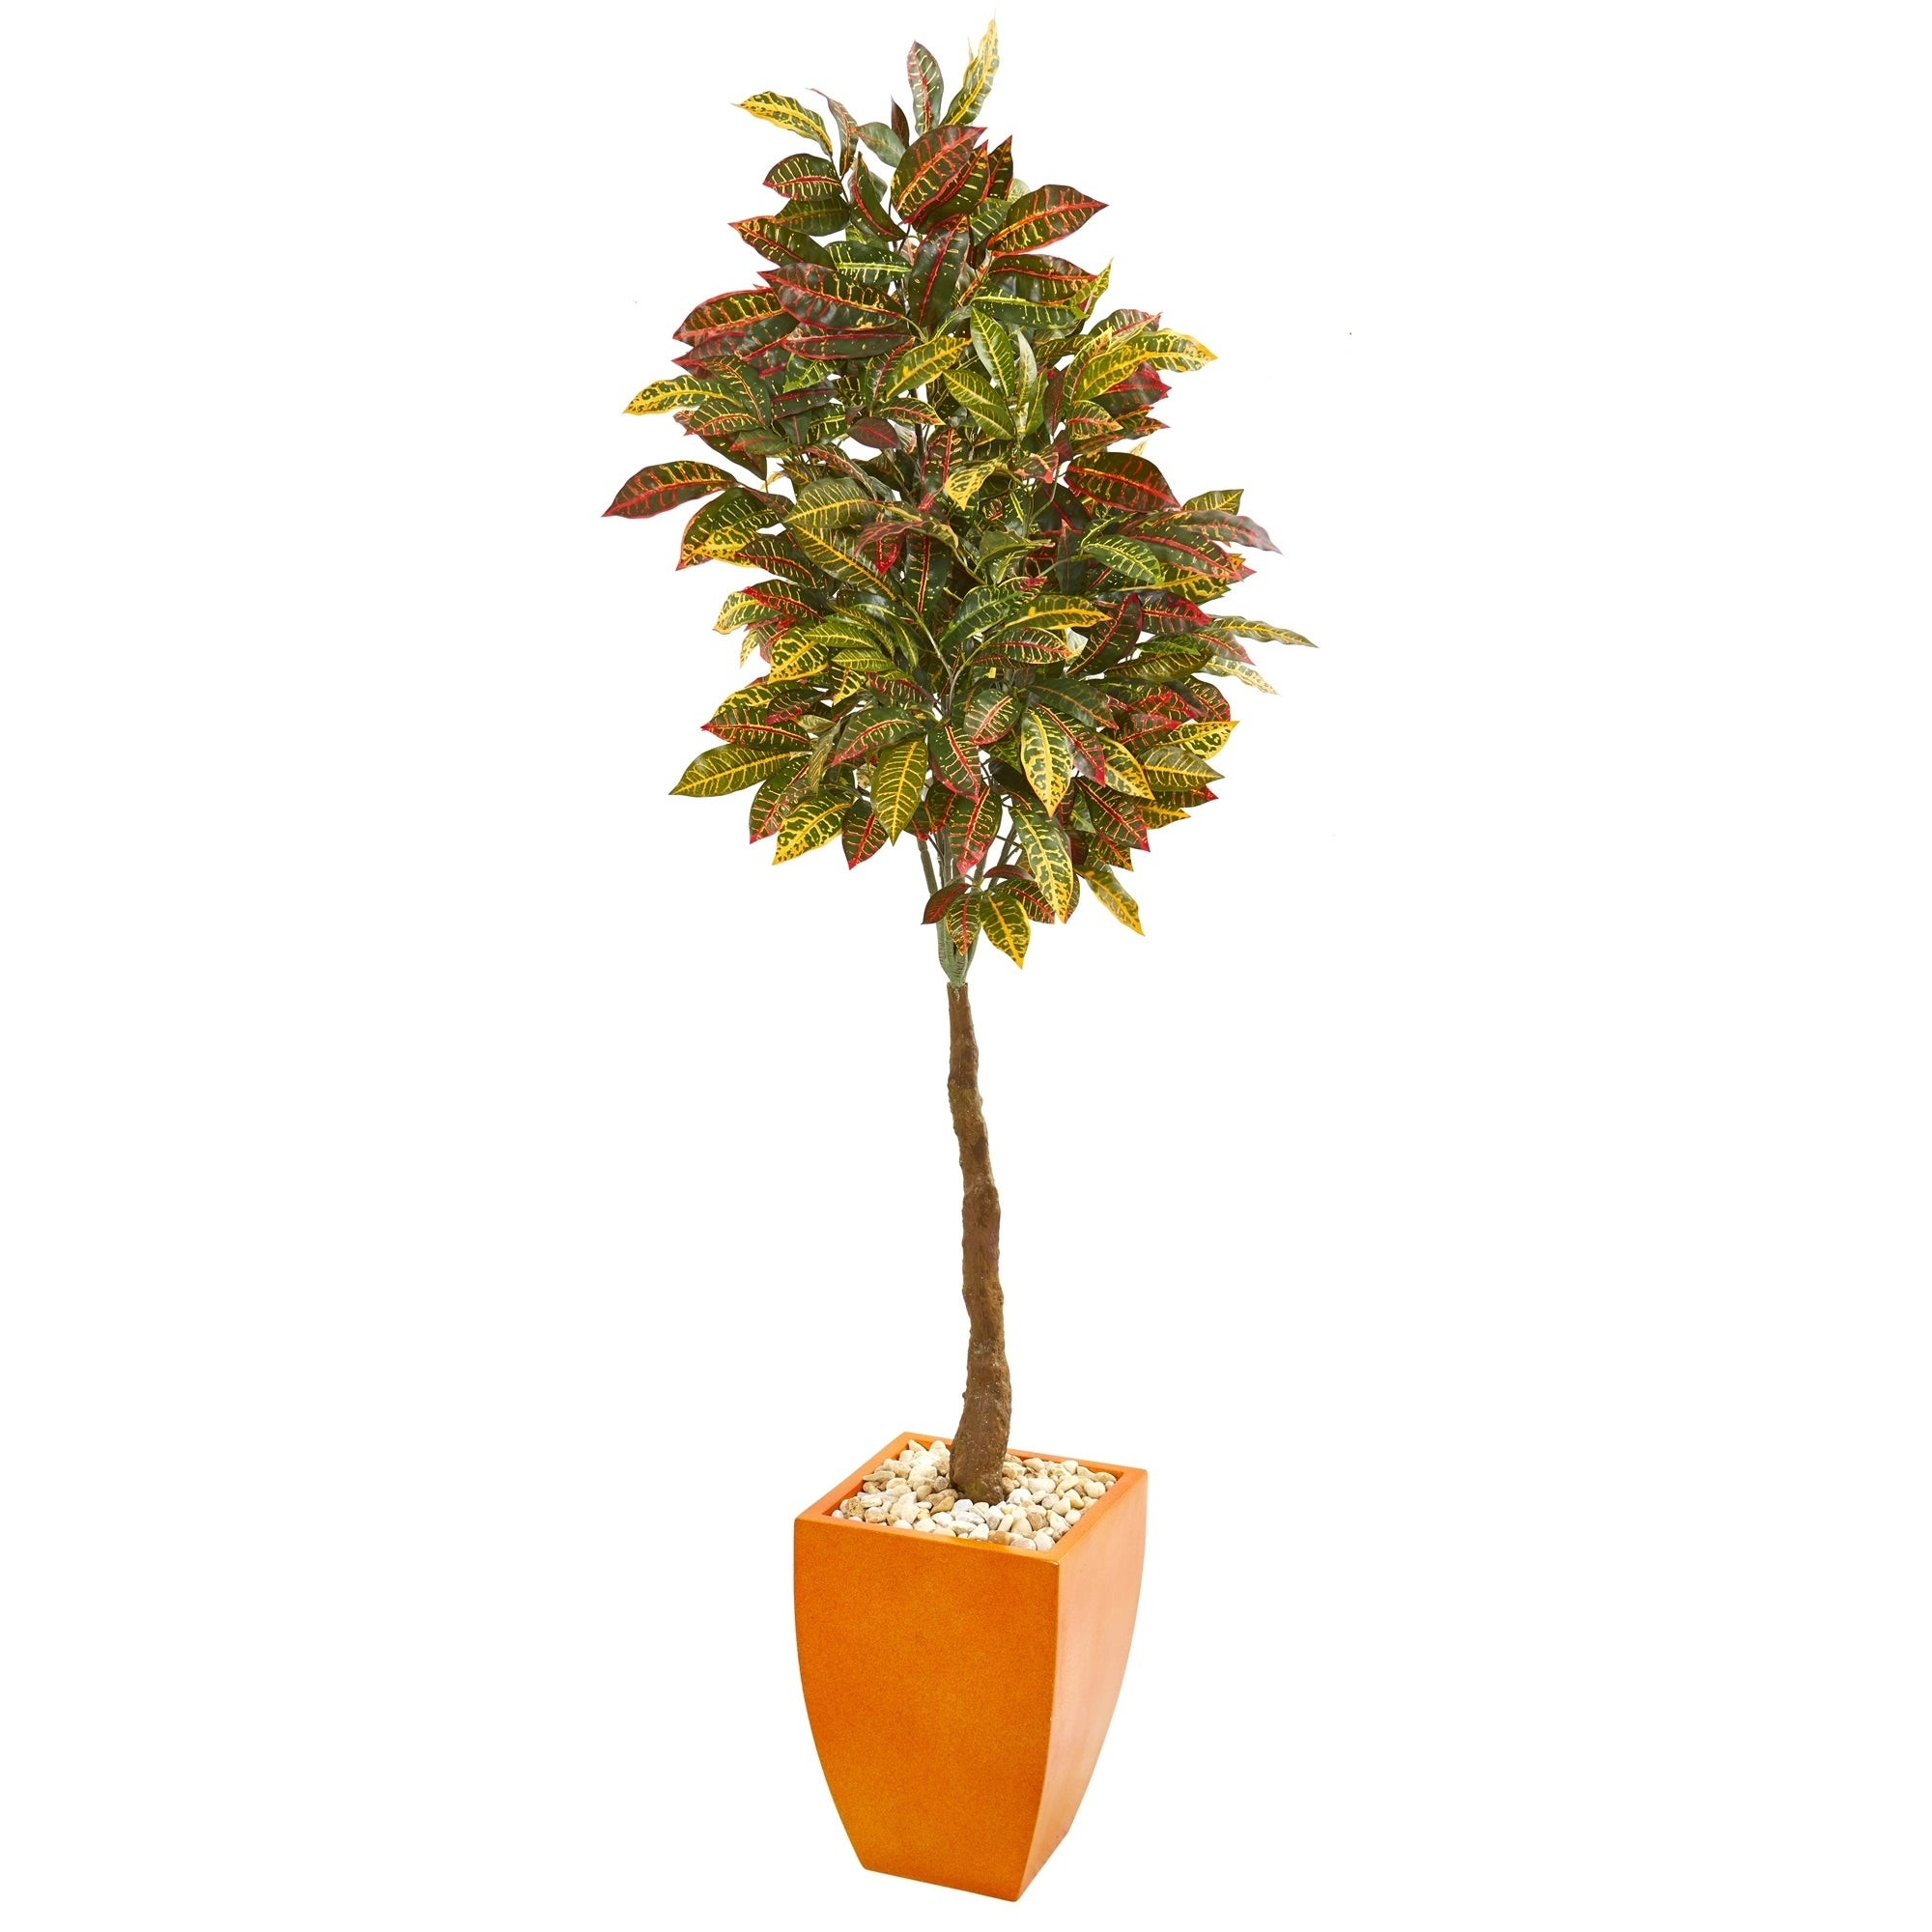 6 Croton Artificial Tree in Orange Planter